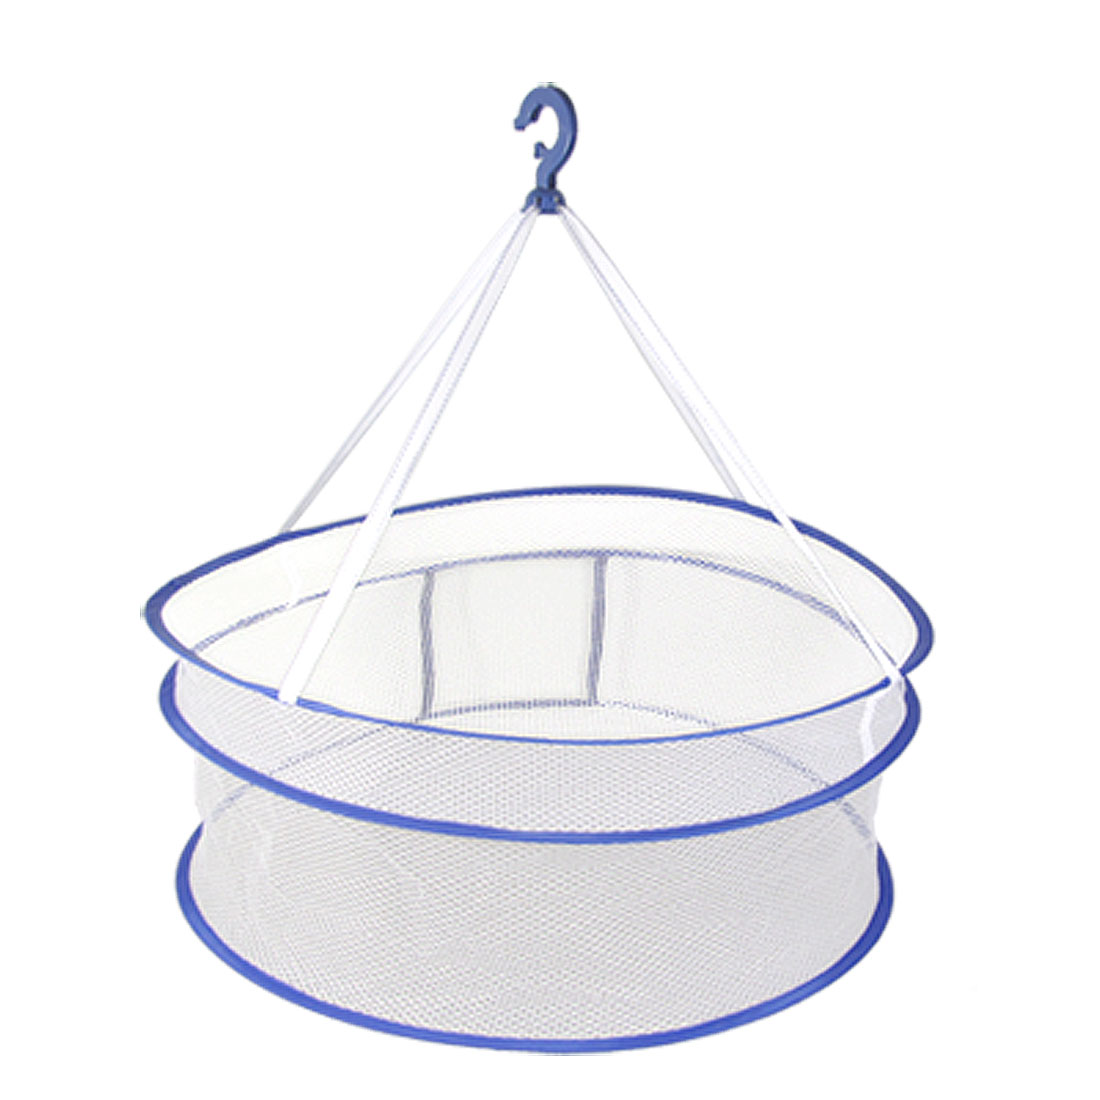 White Netty Hanging Clothes Dryer Basket Holder Blue - image 1 of 1